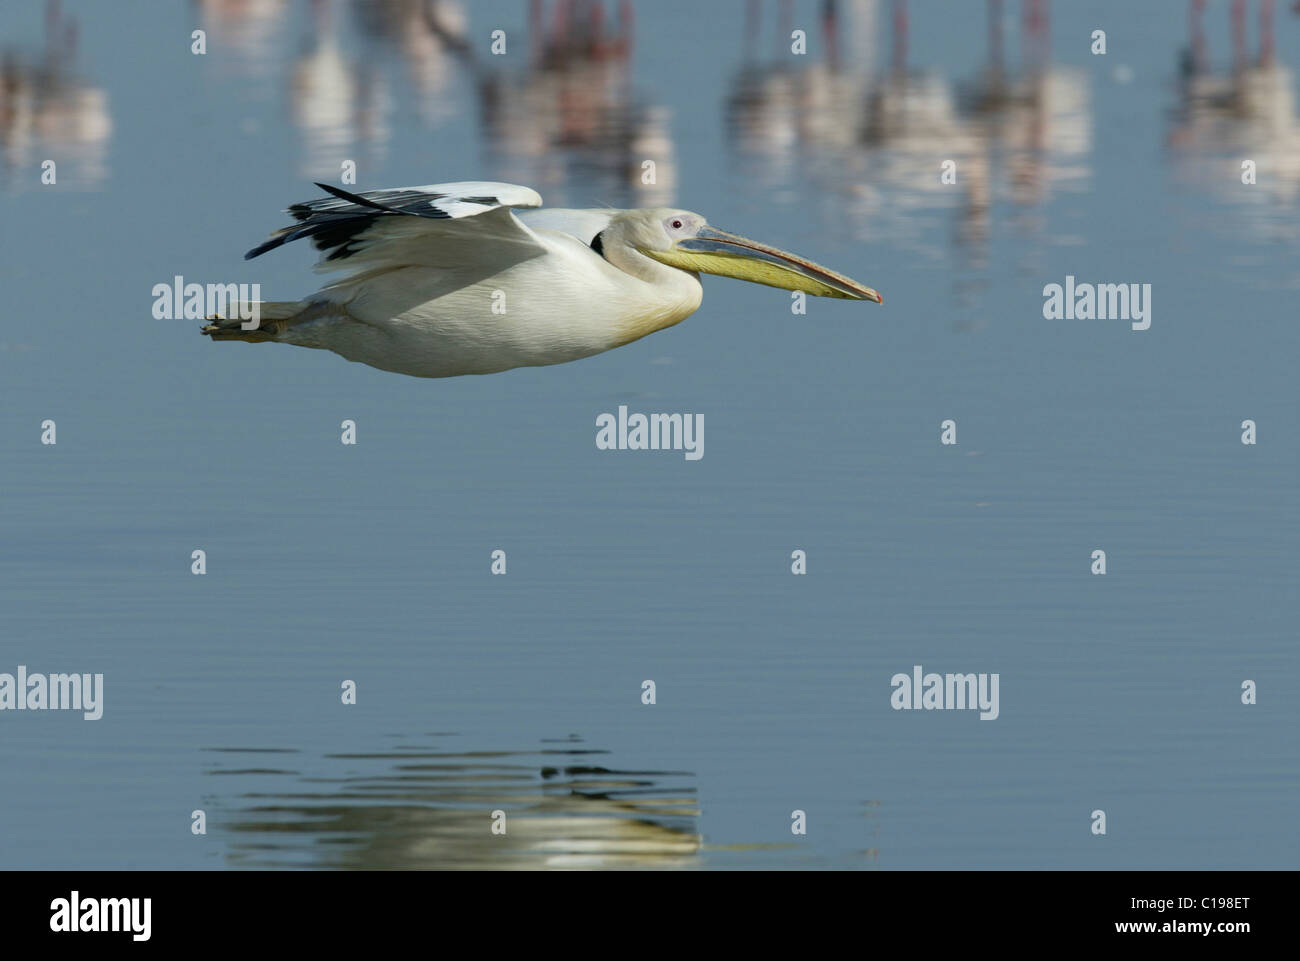 Great White Pelican (Pelecanus onocrotalus), adult in flight, Lake Nakuru, Kenya, Africa - Stock Image